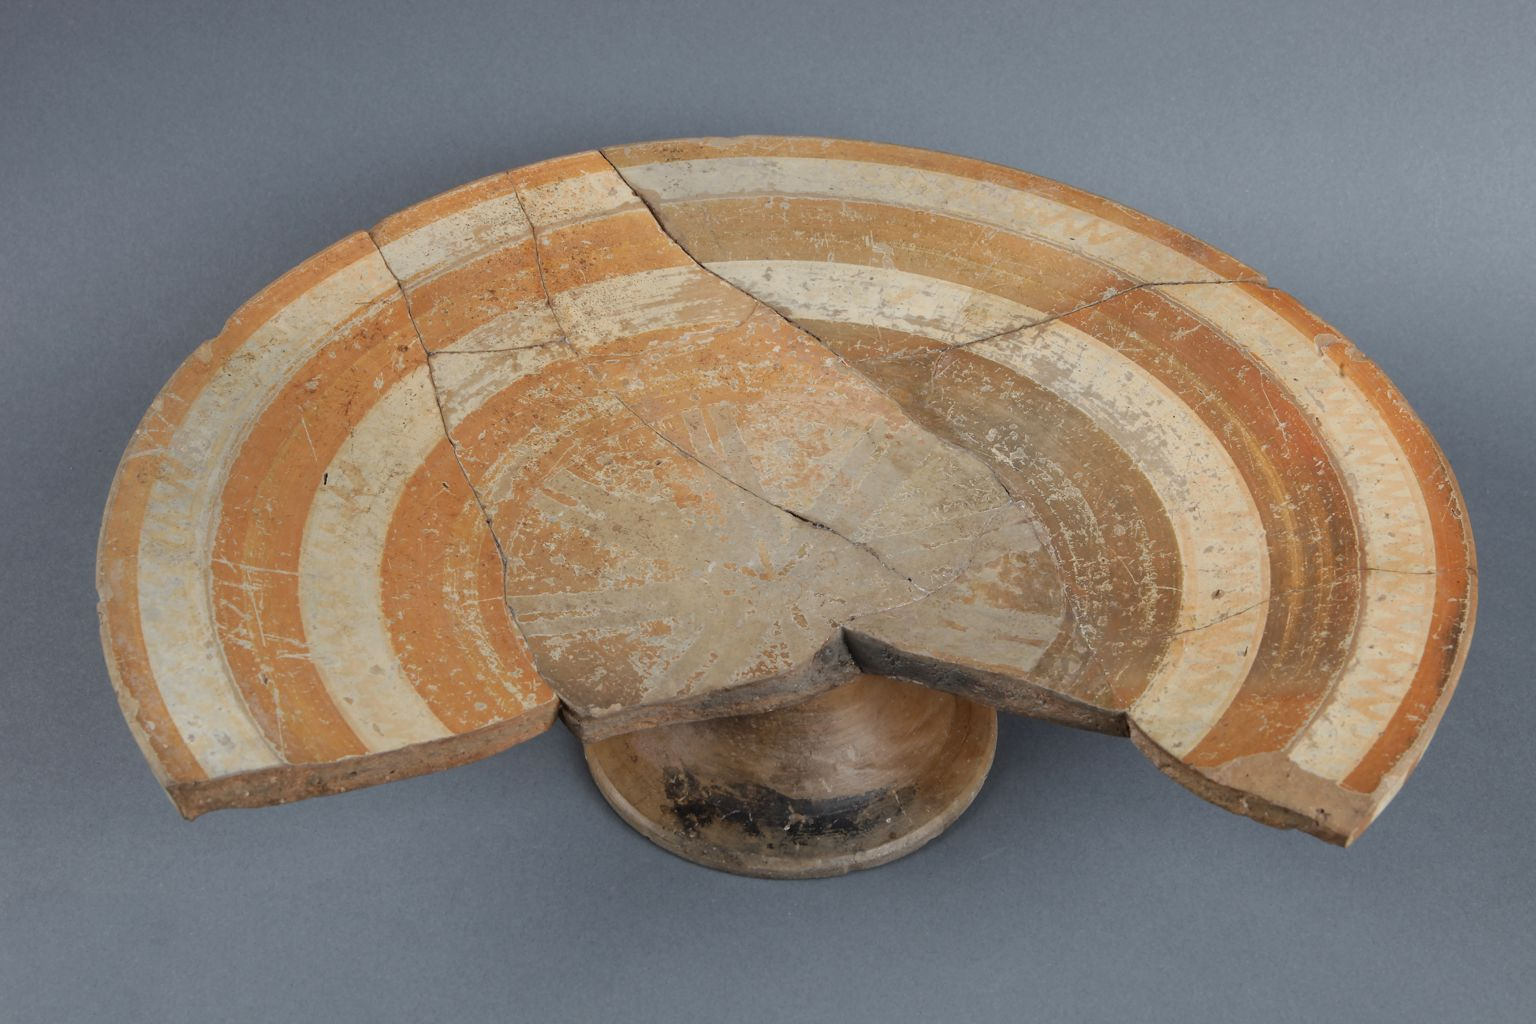 Stemmed dish with painted decoration